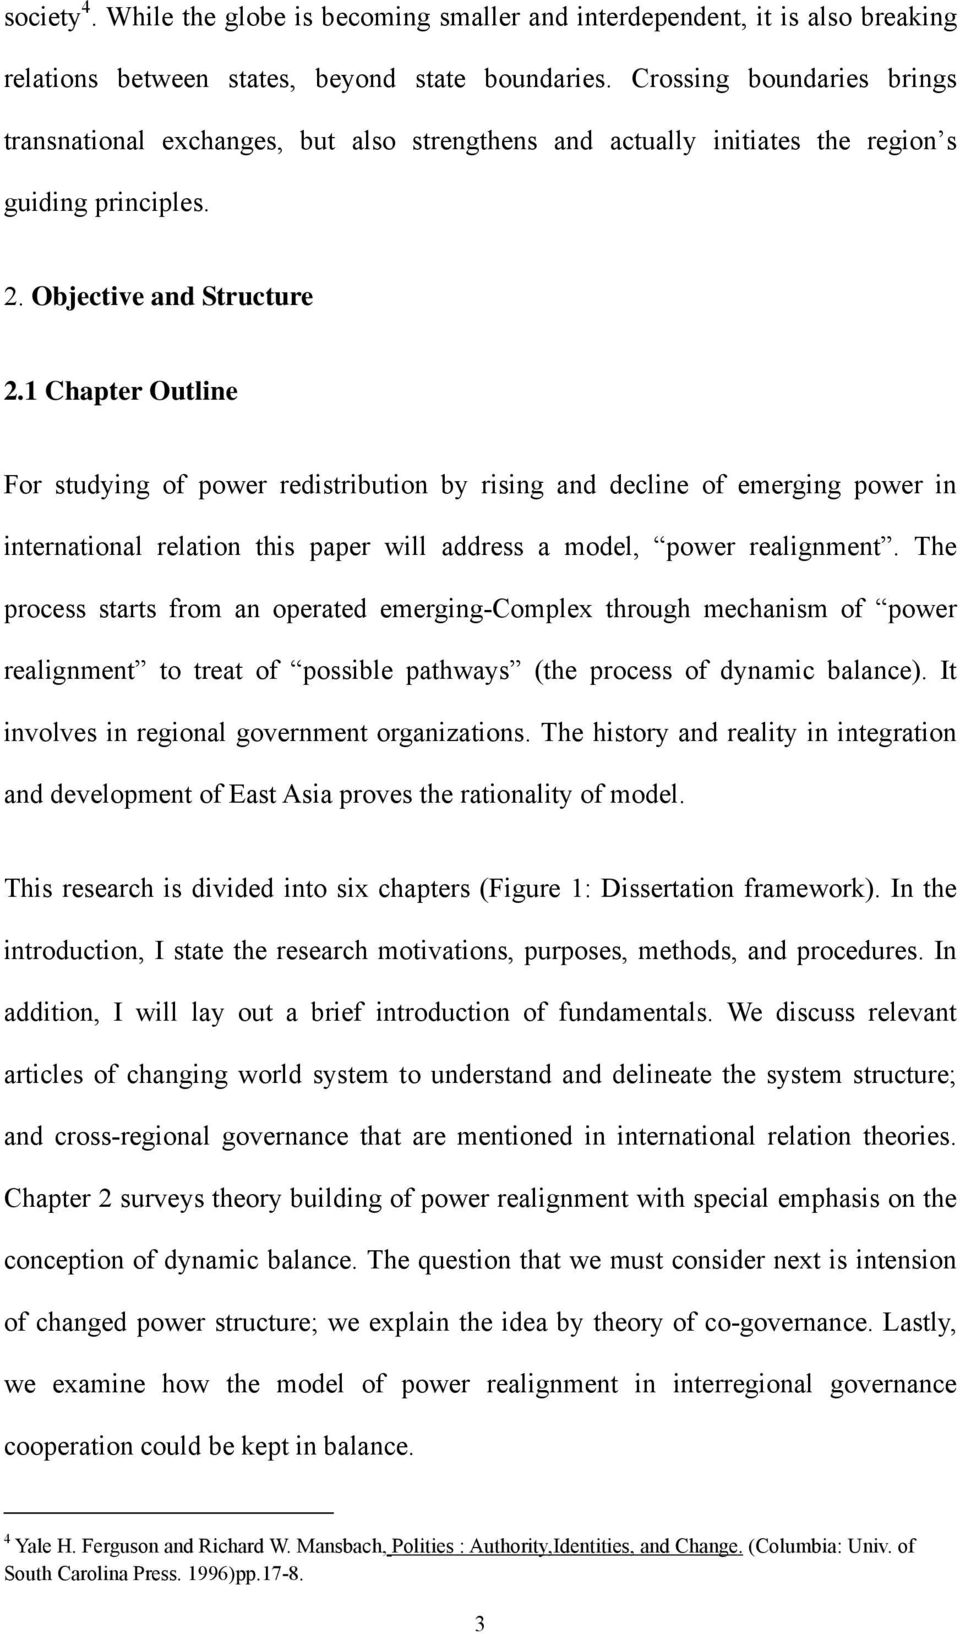 1 Chapter Outline For studying of power redistribution by rising and decline of emerging power in international relation this paper will address a model, power realignment.